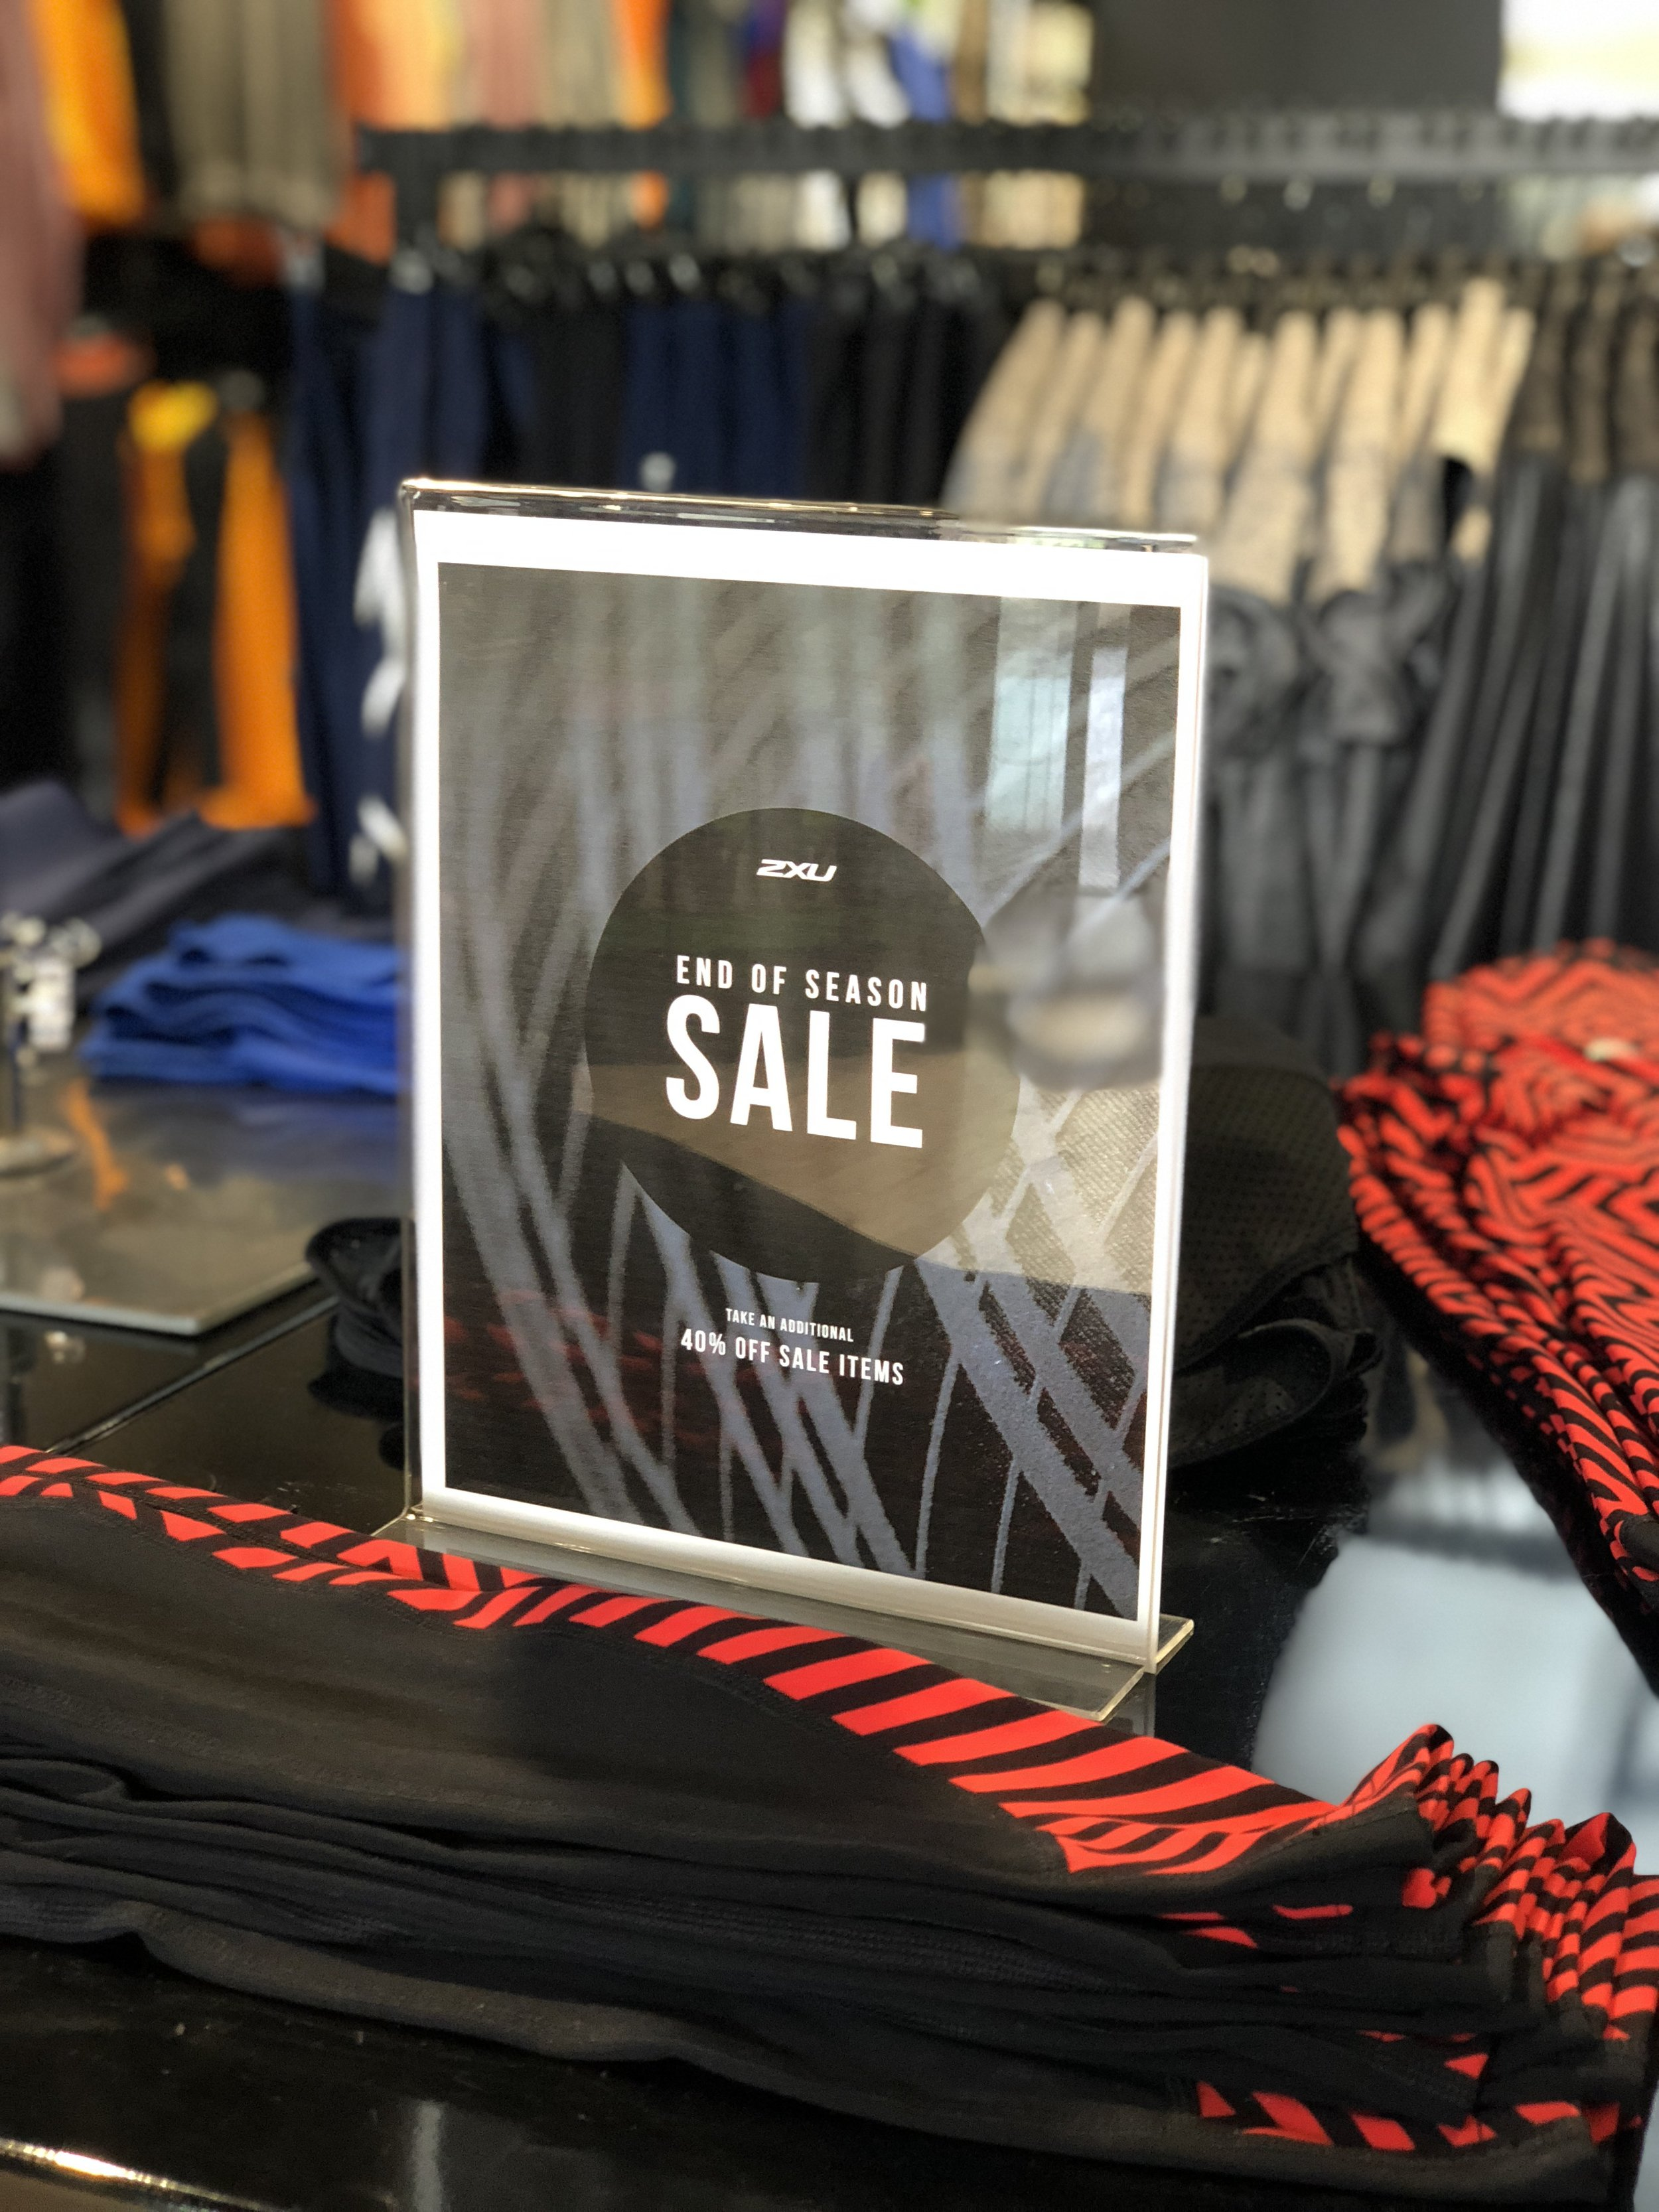 In Store Sale Sign.jpg